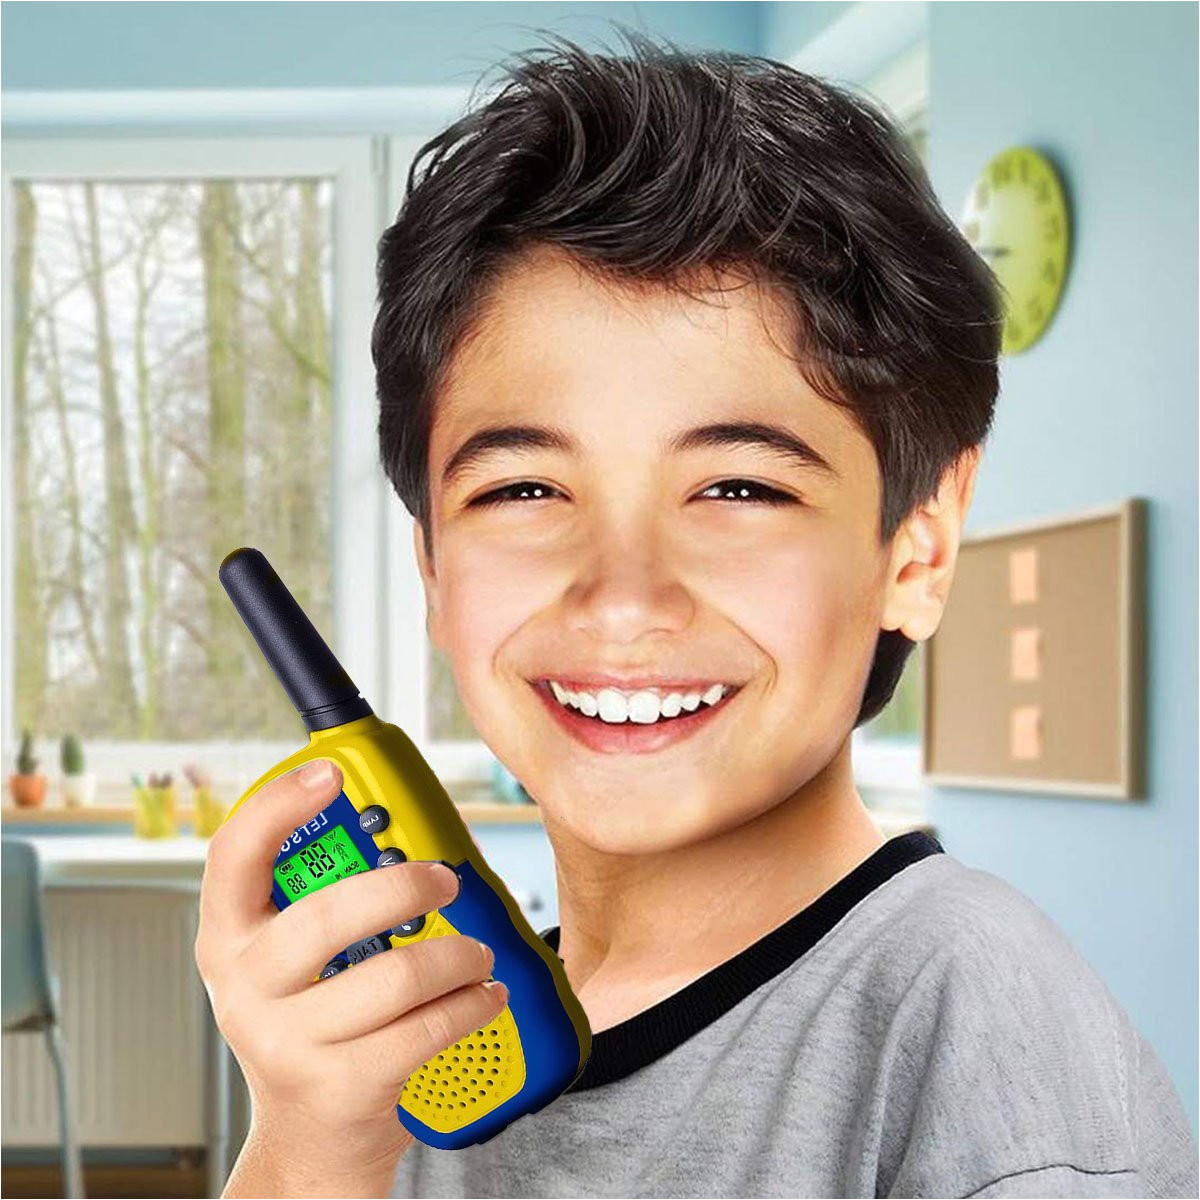 outdoor hunting toys for 3 12 year old boys tisy walkie talkies for kids toys for 3 12 year old girls christmas birthday presents gifts for 3 12 year old